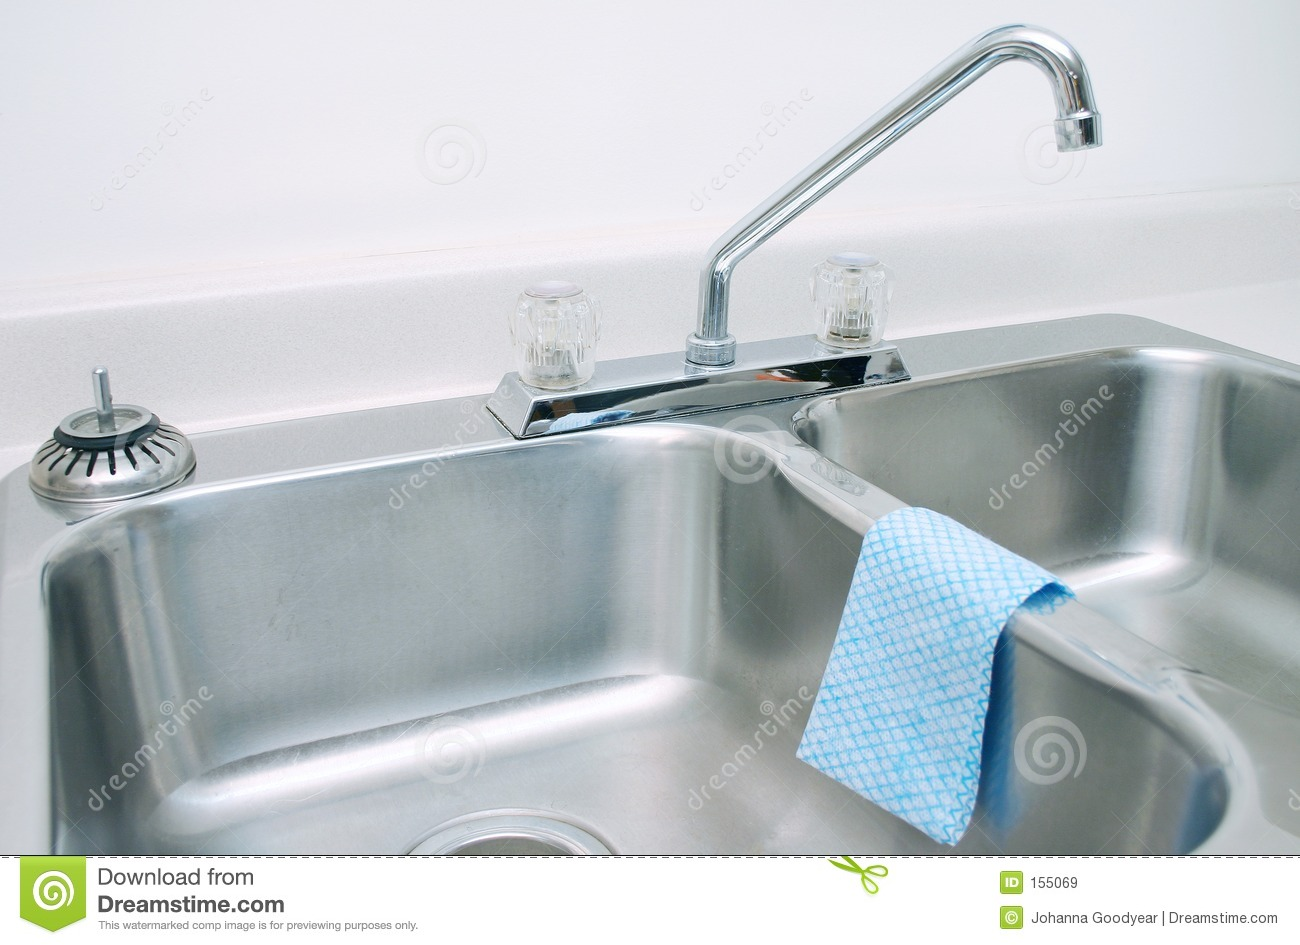 Kitchen sink 2 stock image. Image of interior, clean, water - 155069